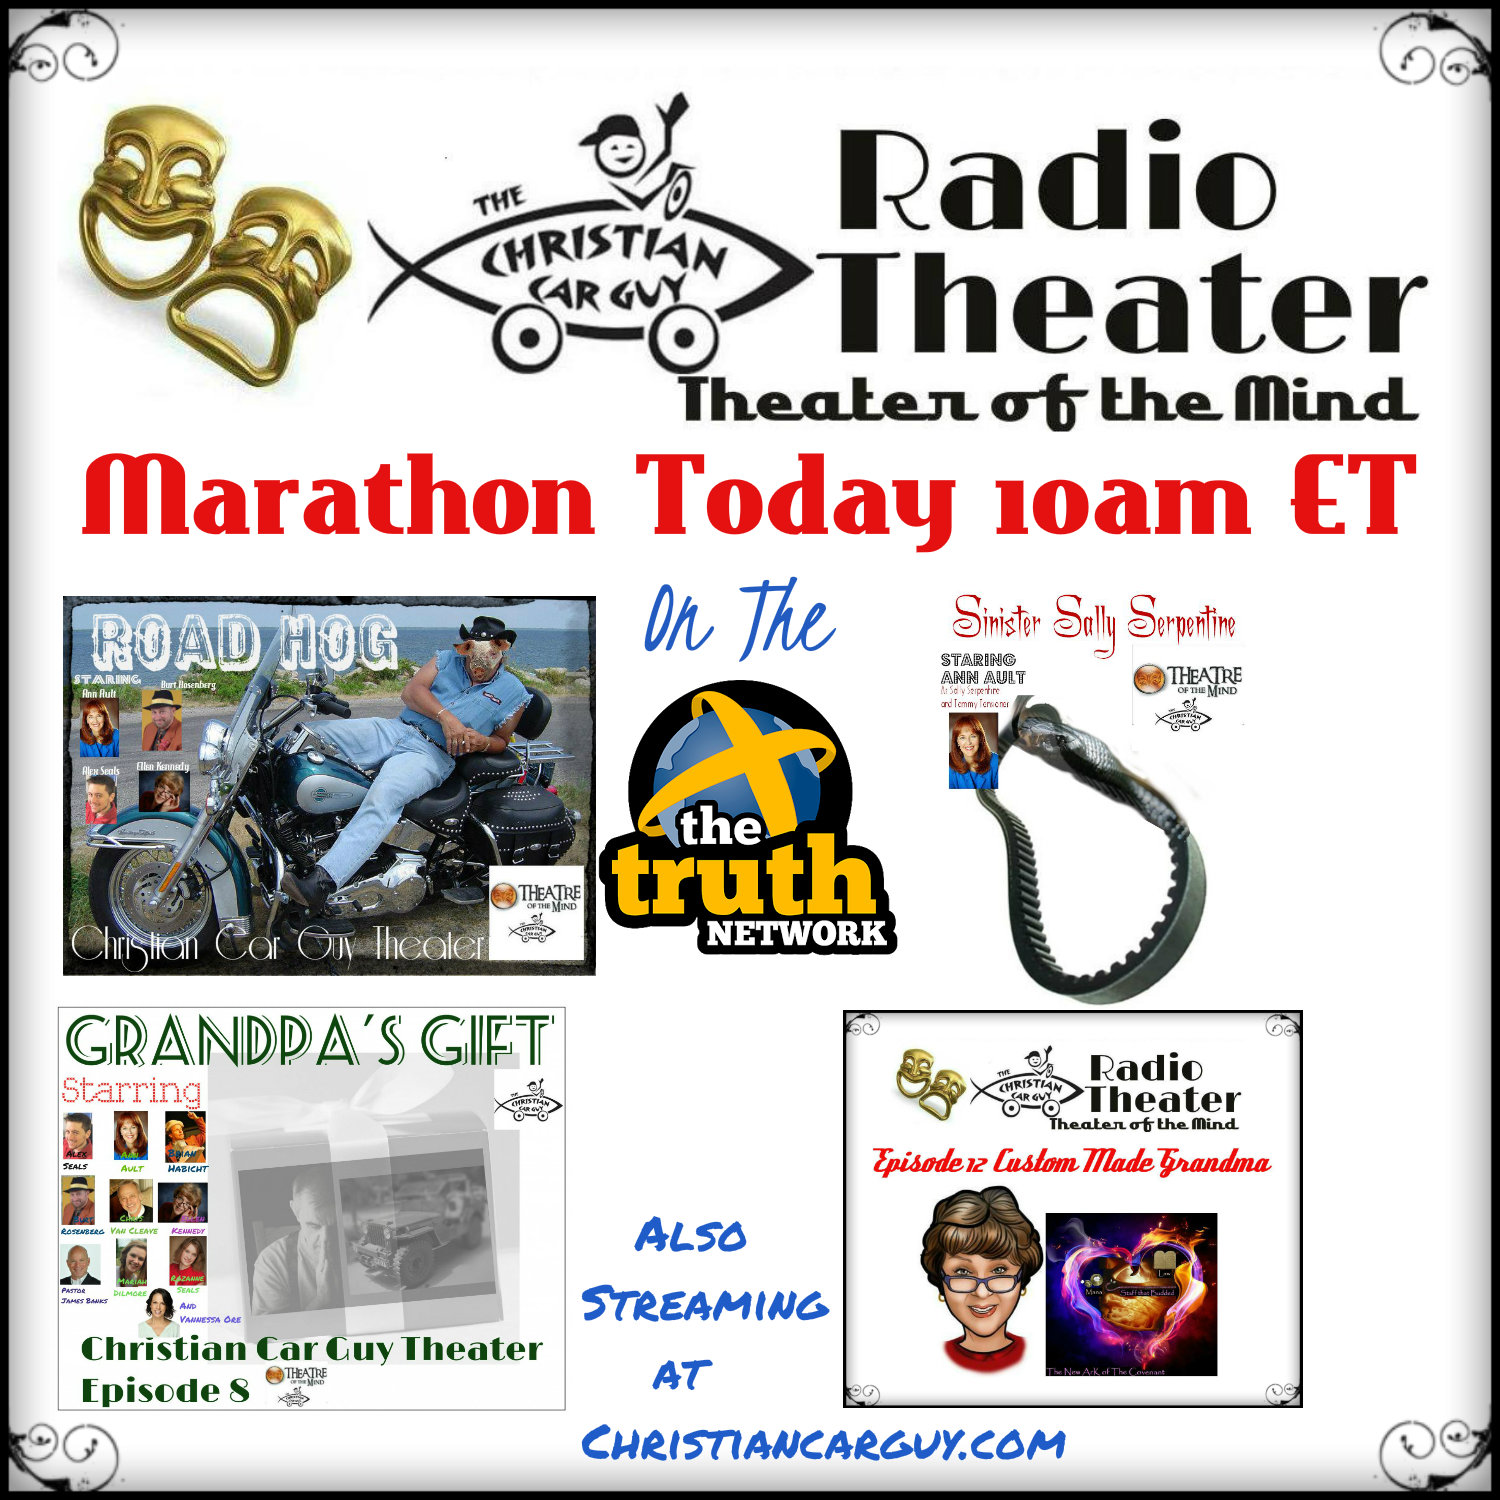 Another Christian Car Guy Theater Marathon January 23rd 2016